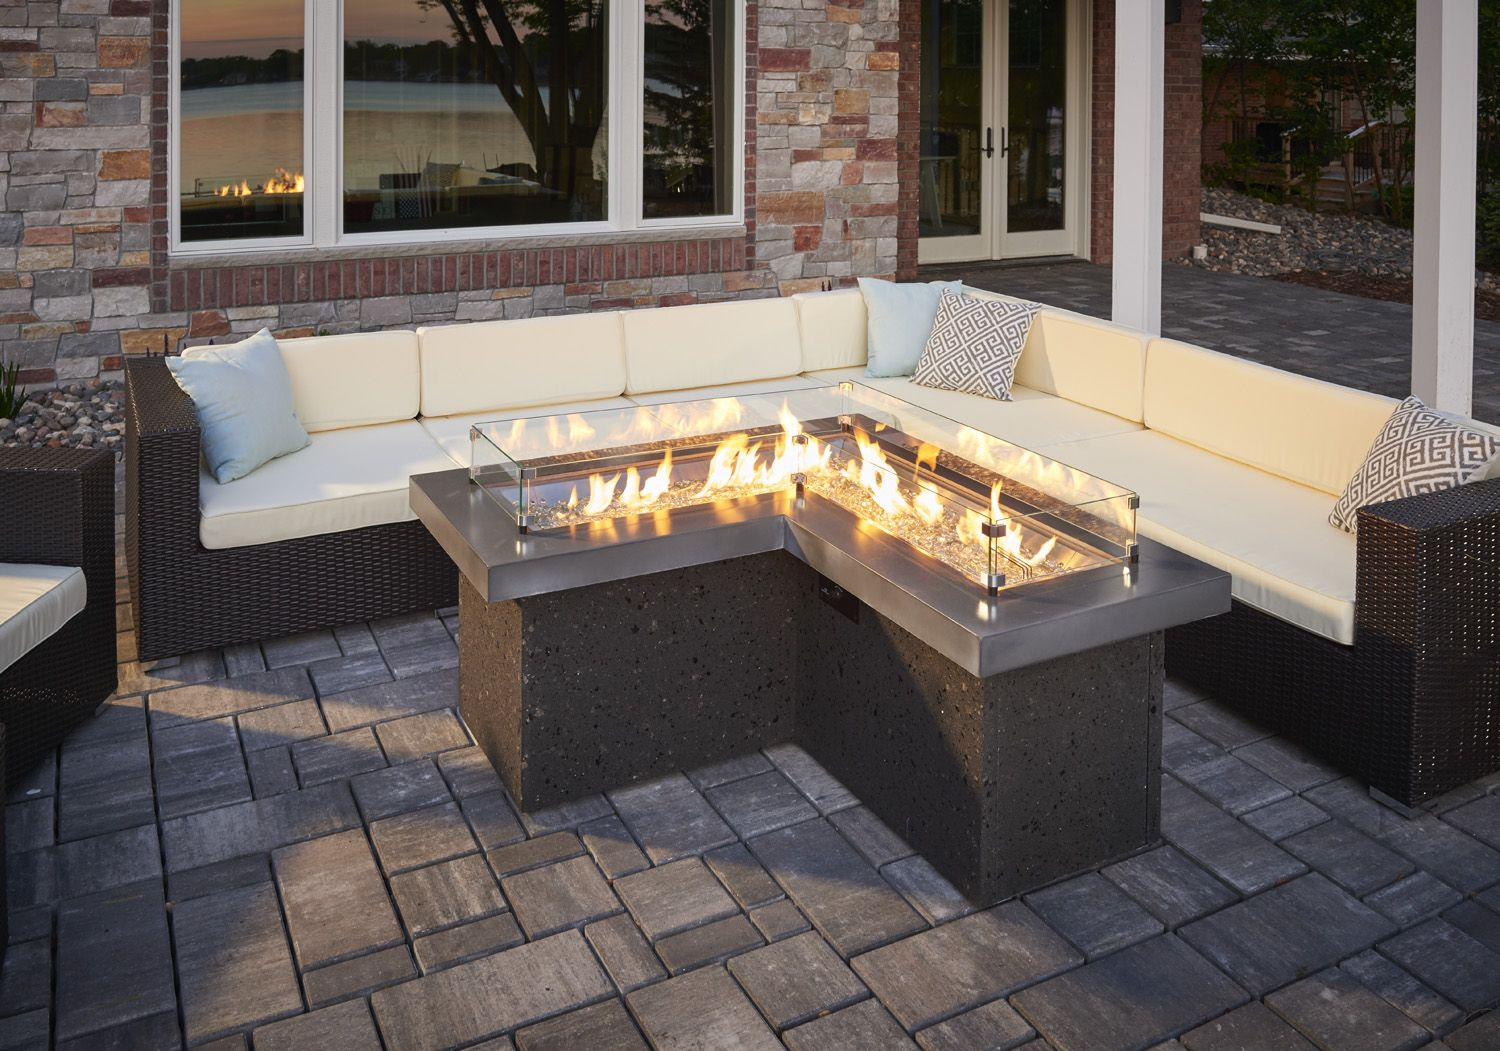 Top 10 Reasons To A Gas Fire Pit Official Outdoor Living Blog